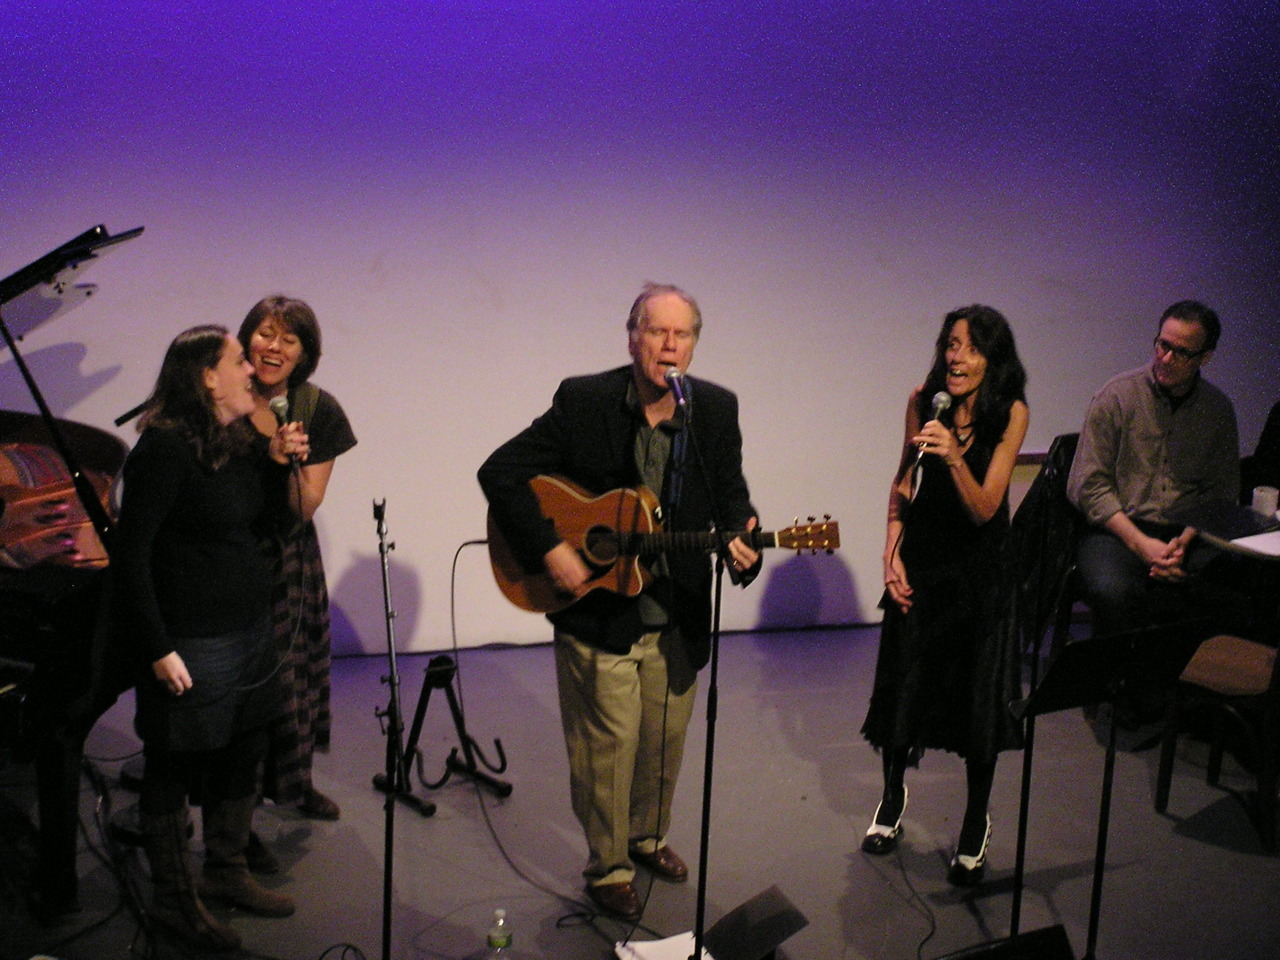 Suzzy Roche, Loudon Wainwright, Martha Wainwright, and Lucy Wainwright belt out an amazing tune at last night celebrating the release of Suzzy's new novel, Wayward Saints.  A truly lovely night of music, words, and art.